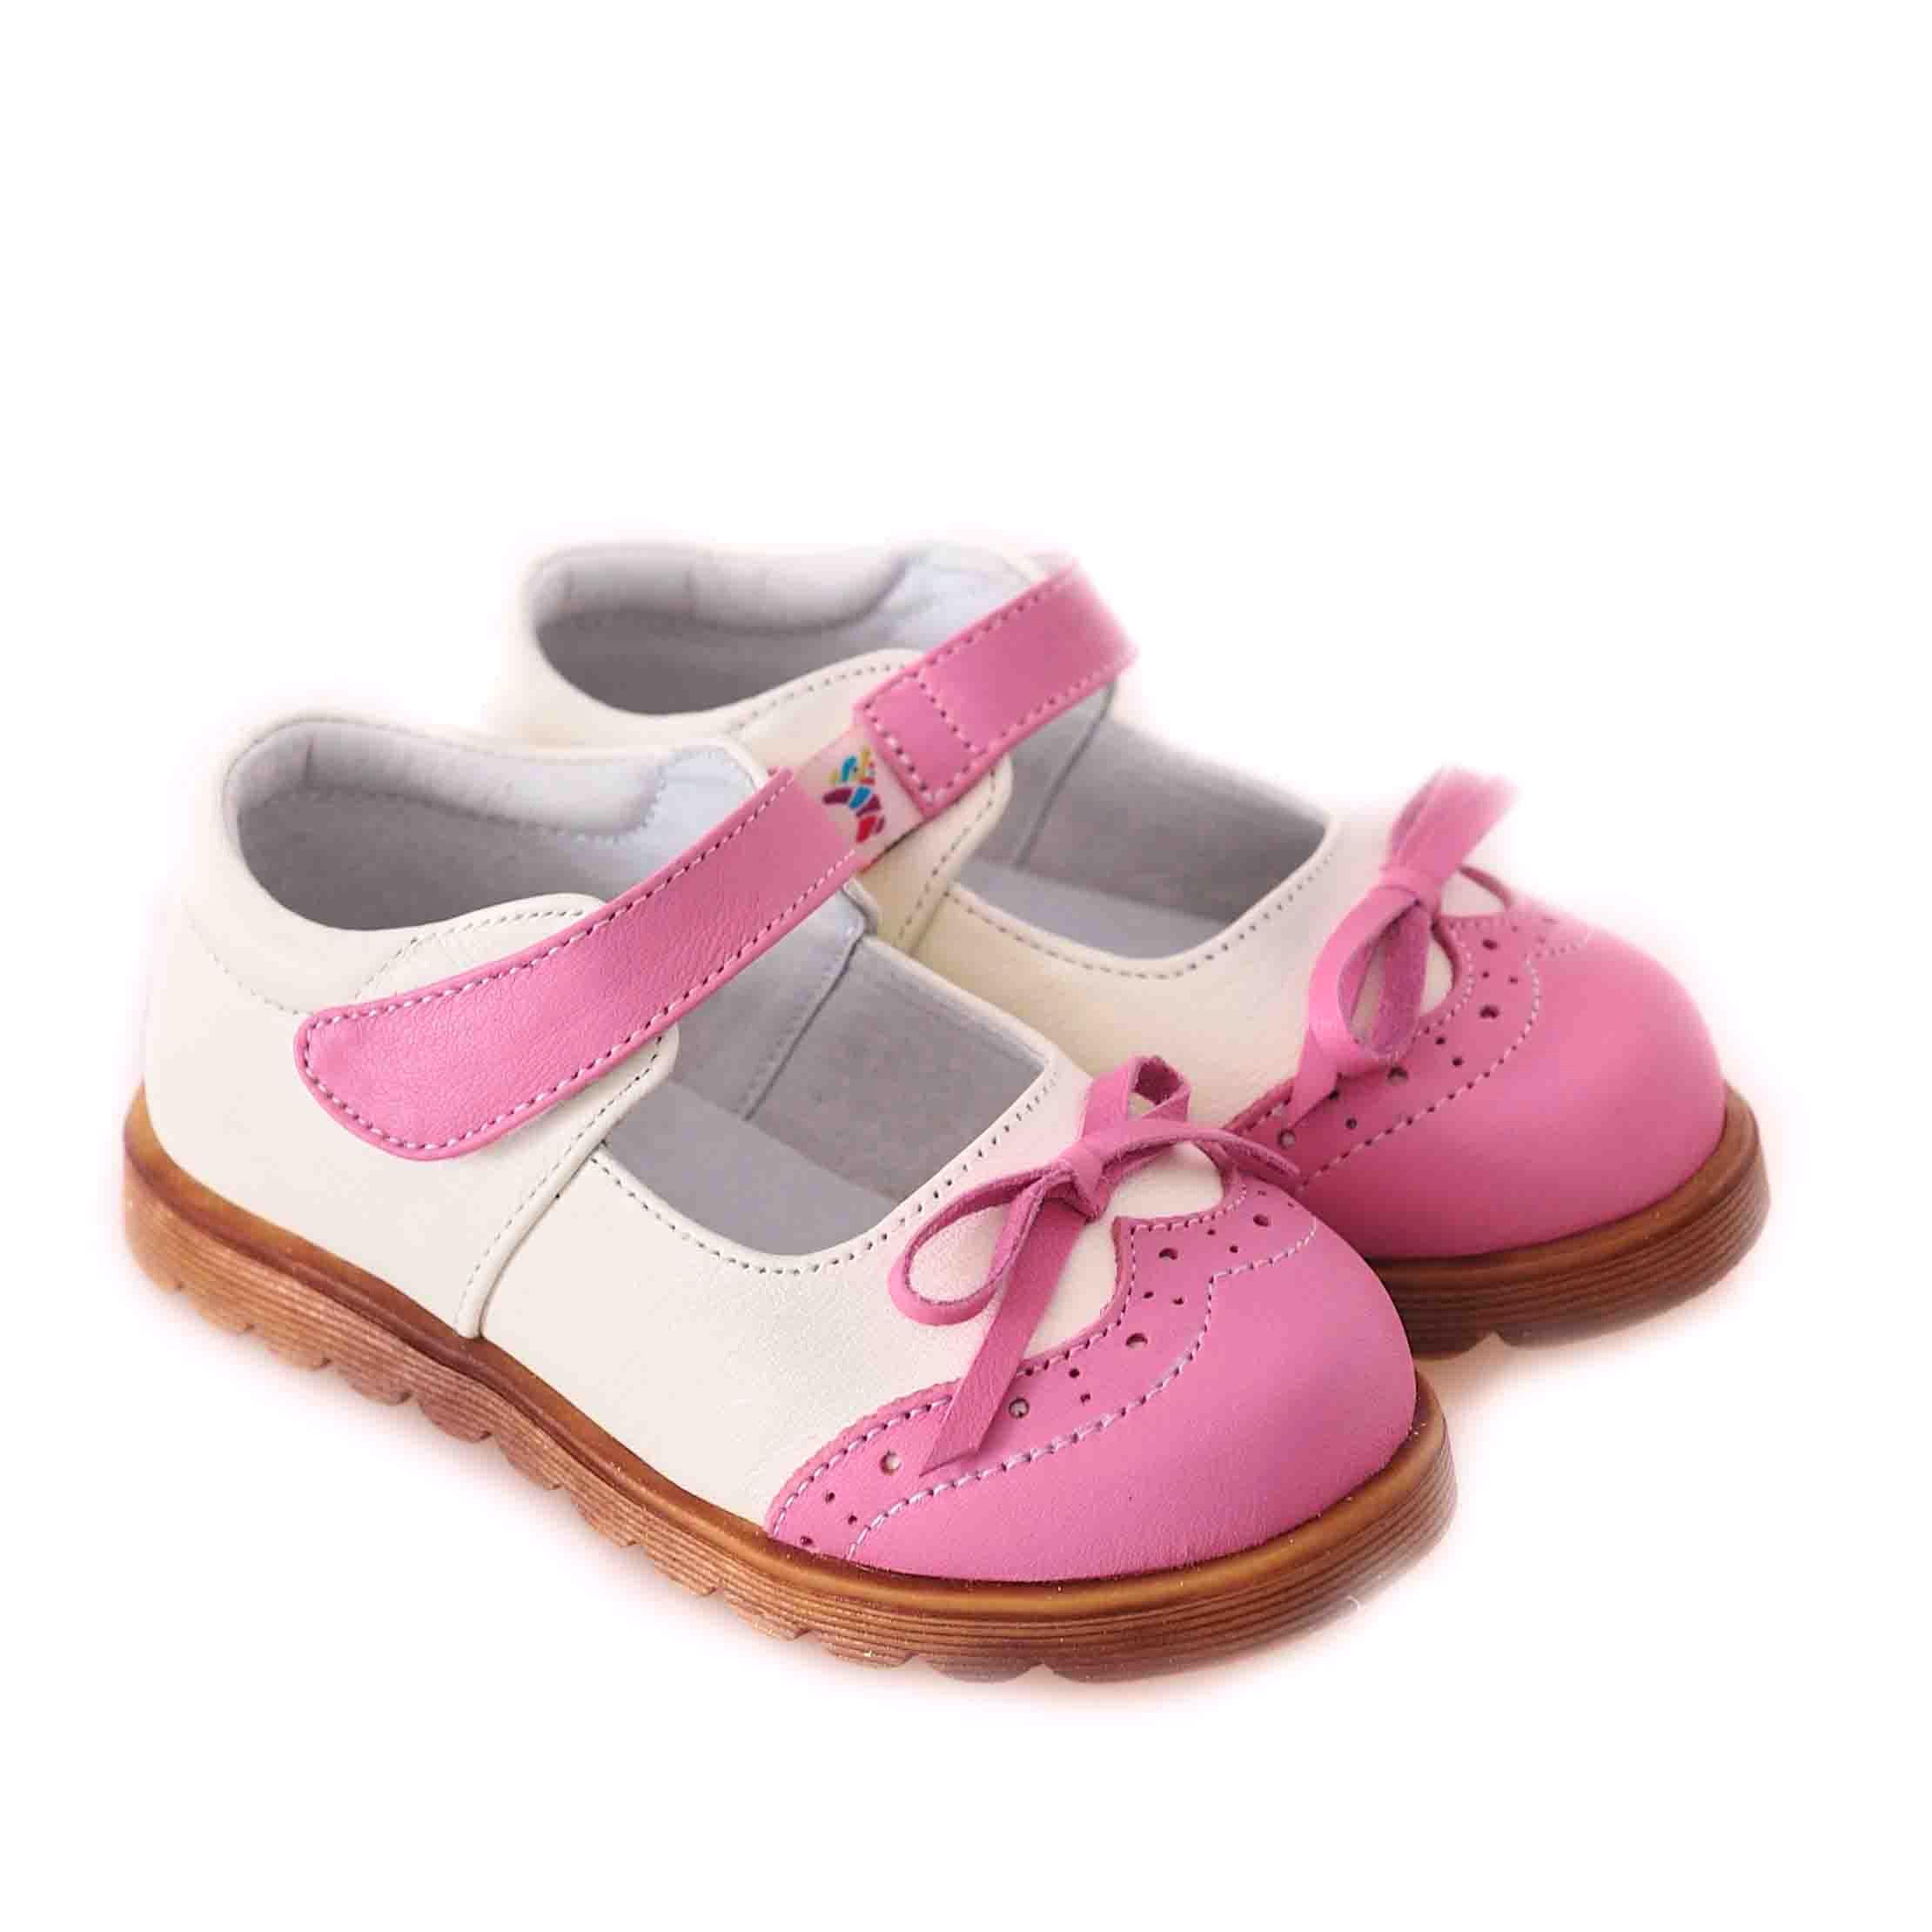 kids' converse shoes Designed for the next generation of dreamers, thinkers and originals, kids' Converse shoes are designed to meet the demands of your kid's all-day play. Shop our selection of C onverse sneakers for boys, girls, toddlers and baby-booties for infants.